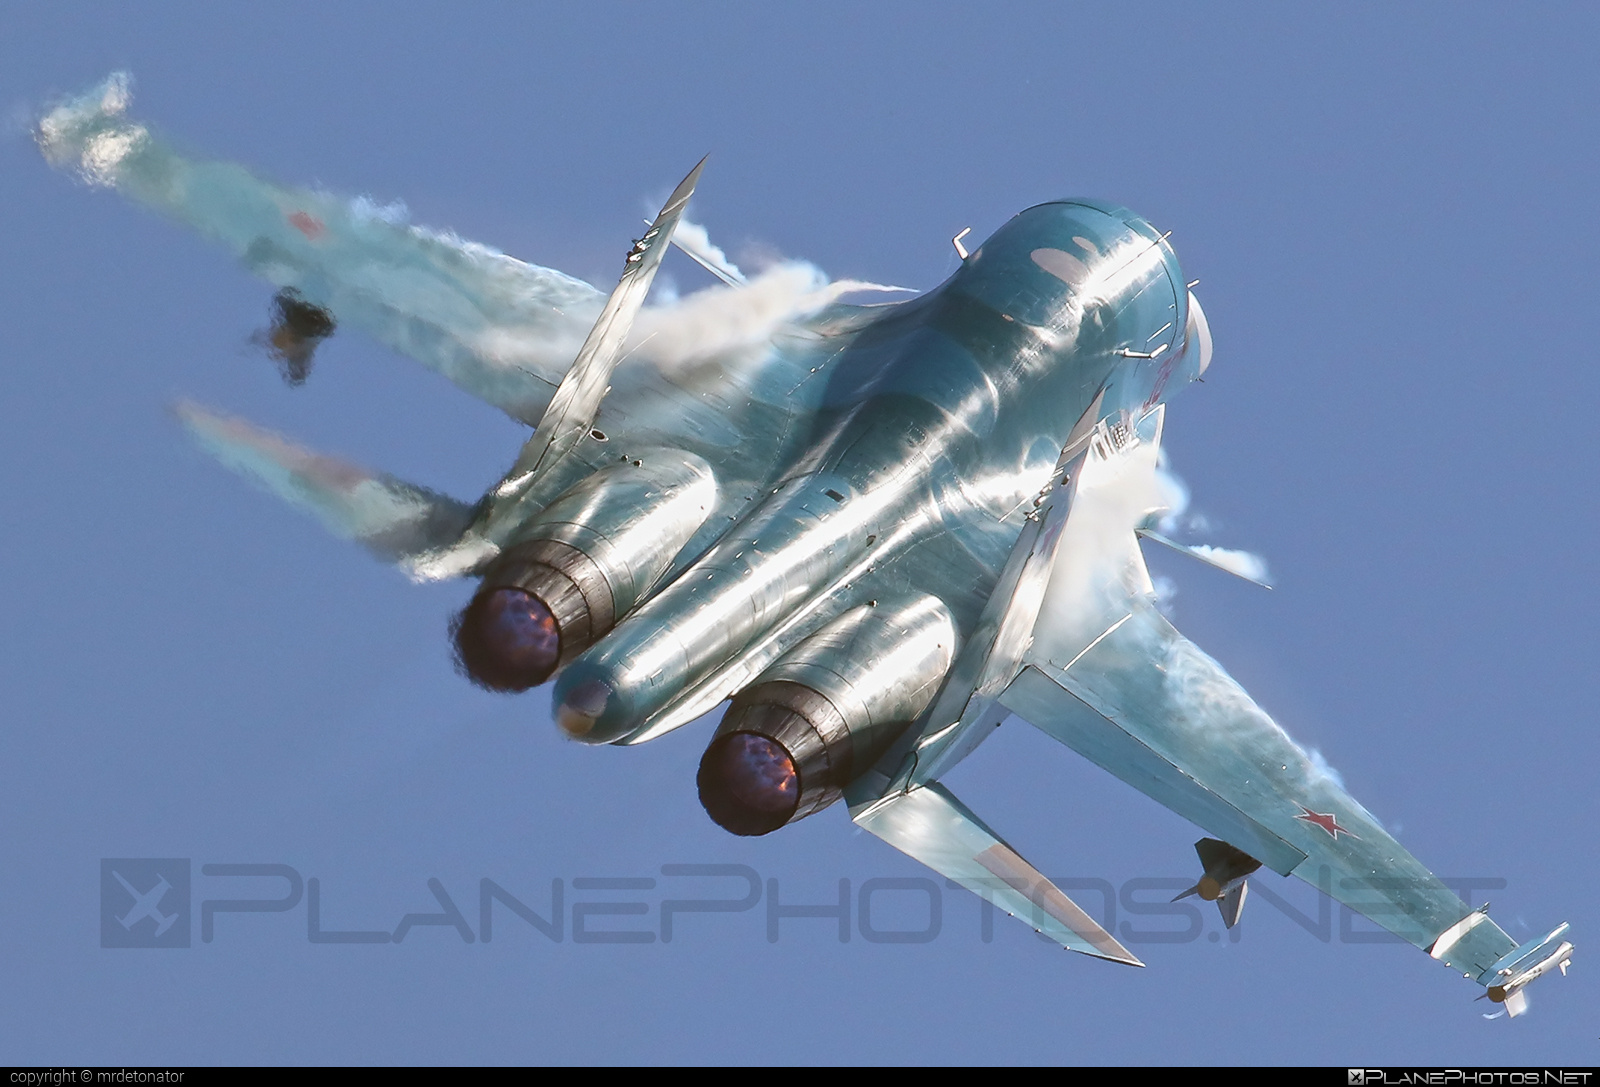 Sukhoi Su-34 - 38 operated by Voyenno-vozdushnye sily Rossii (Russian Air Force) #sukhoi